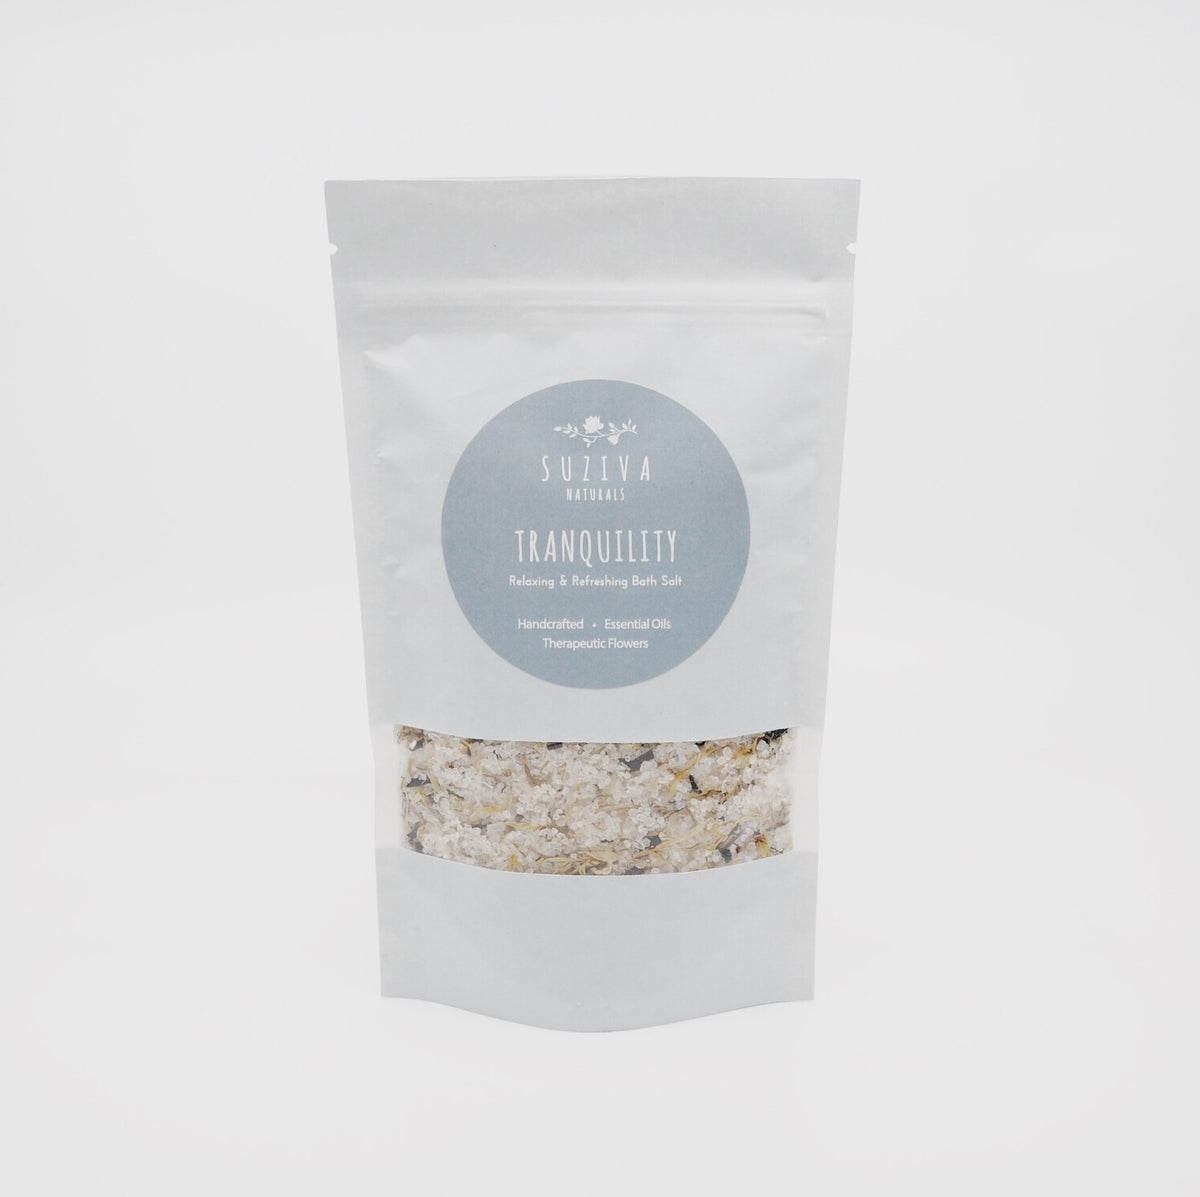 Handmade bath salts with flowers - Tranquility